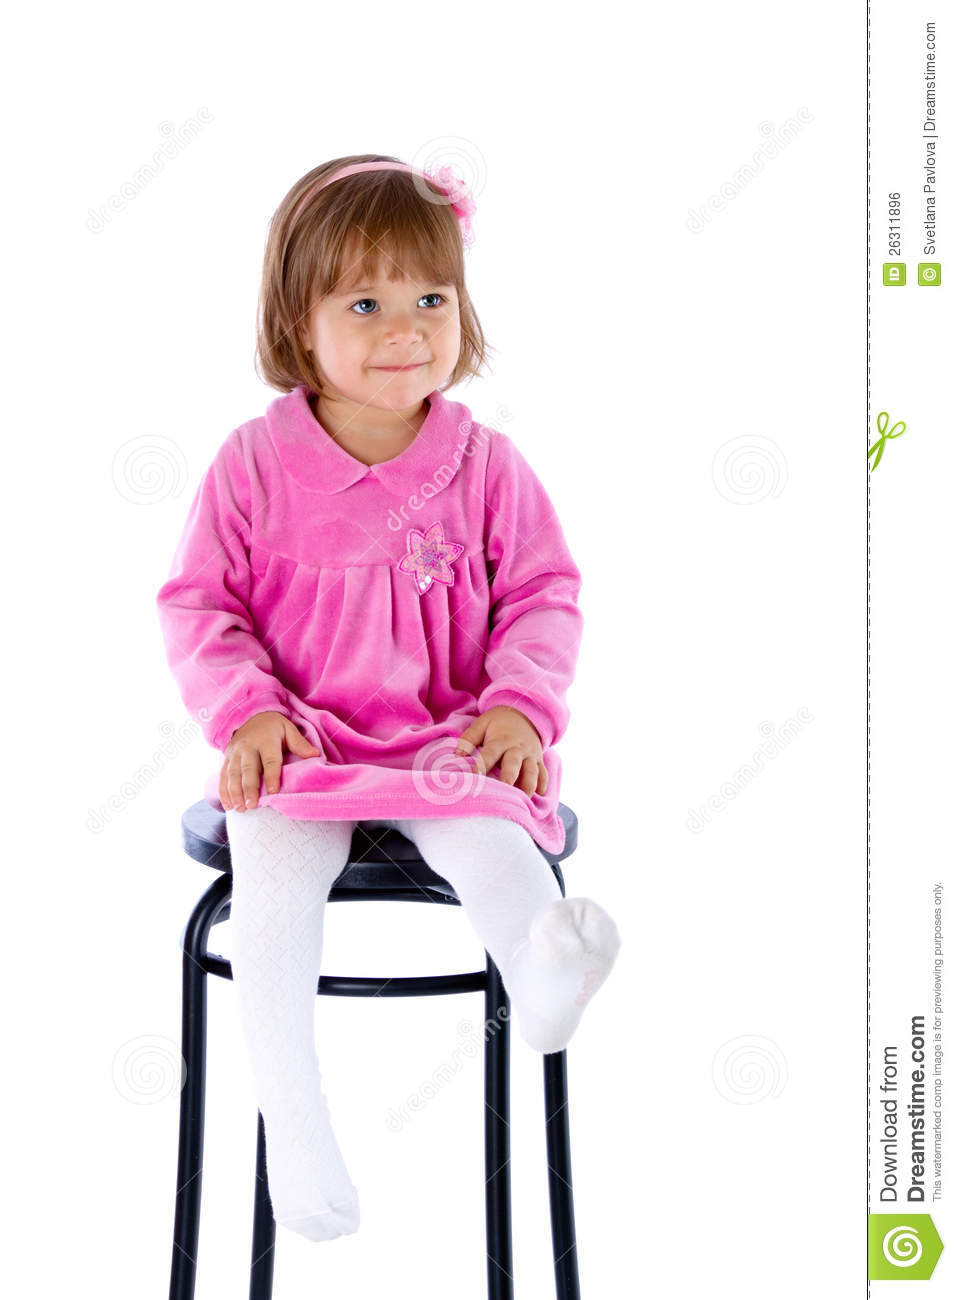 the little girl sits on a high chair stock photo image 26311896. Black Bedroom Furniture Sets. Home Design Ideas